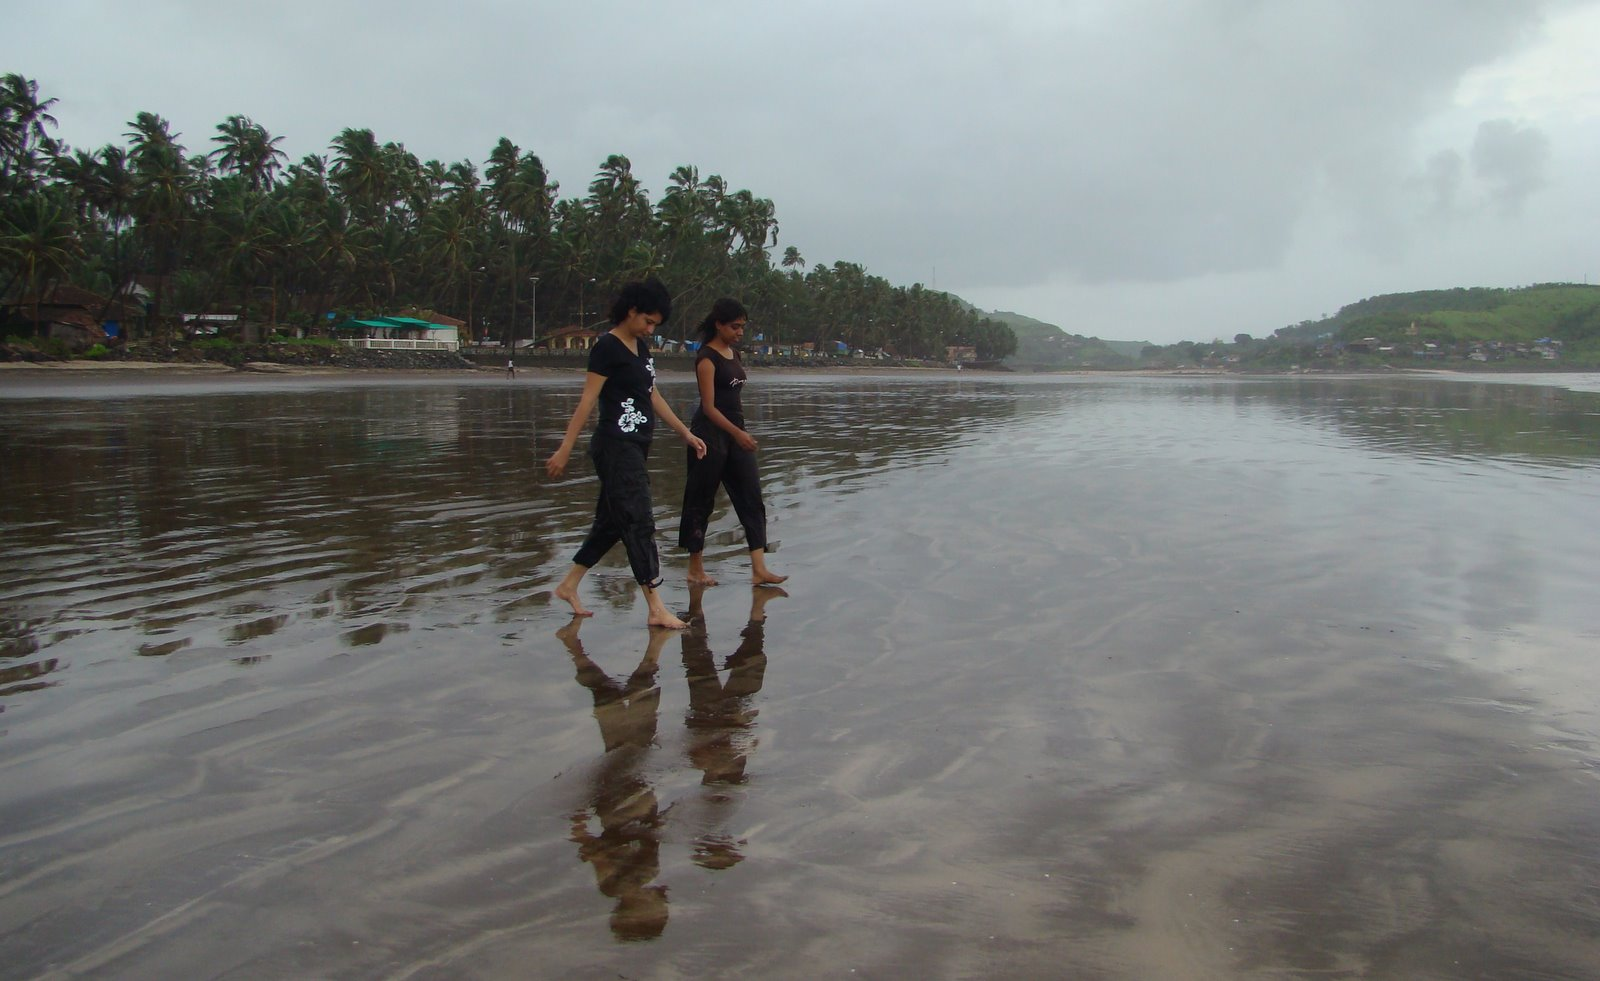 Konkan Beaches http://www.natureknights.net/2010_04_01_archive.html